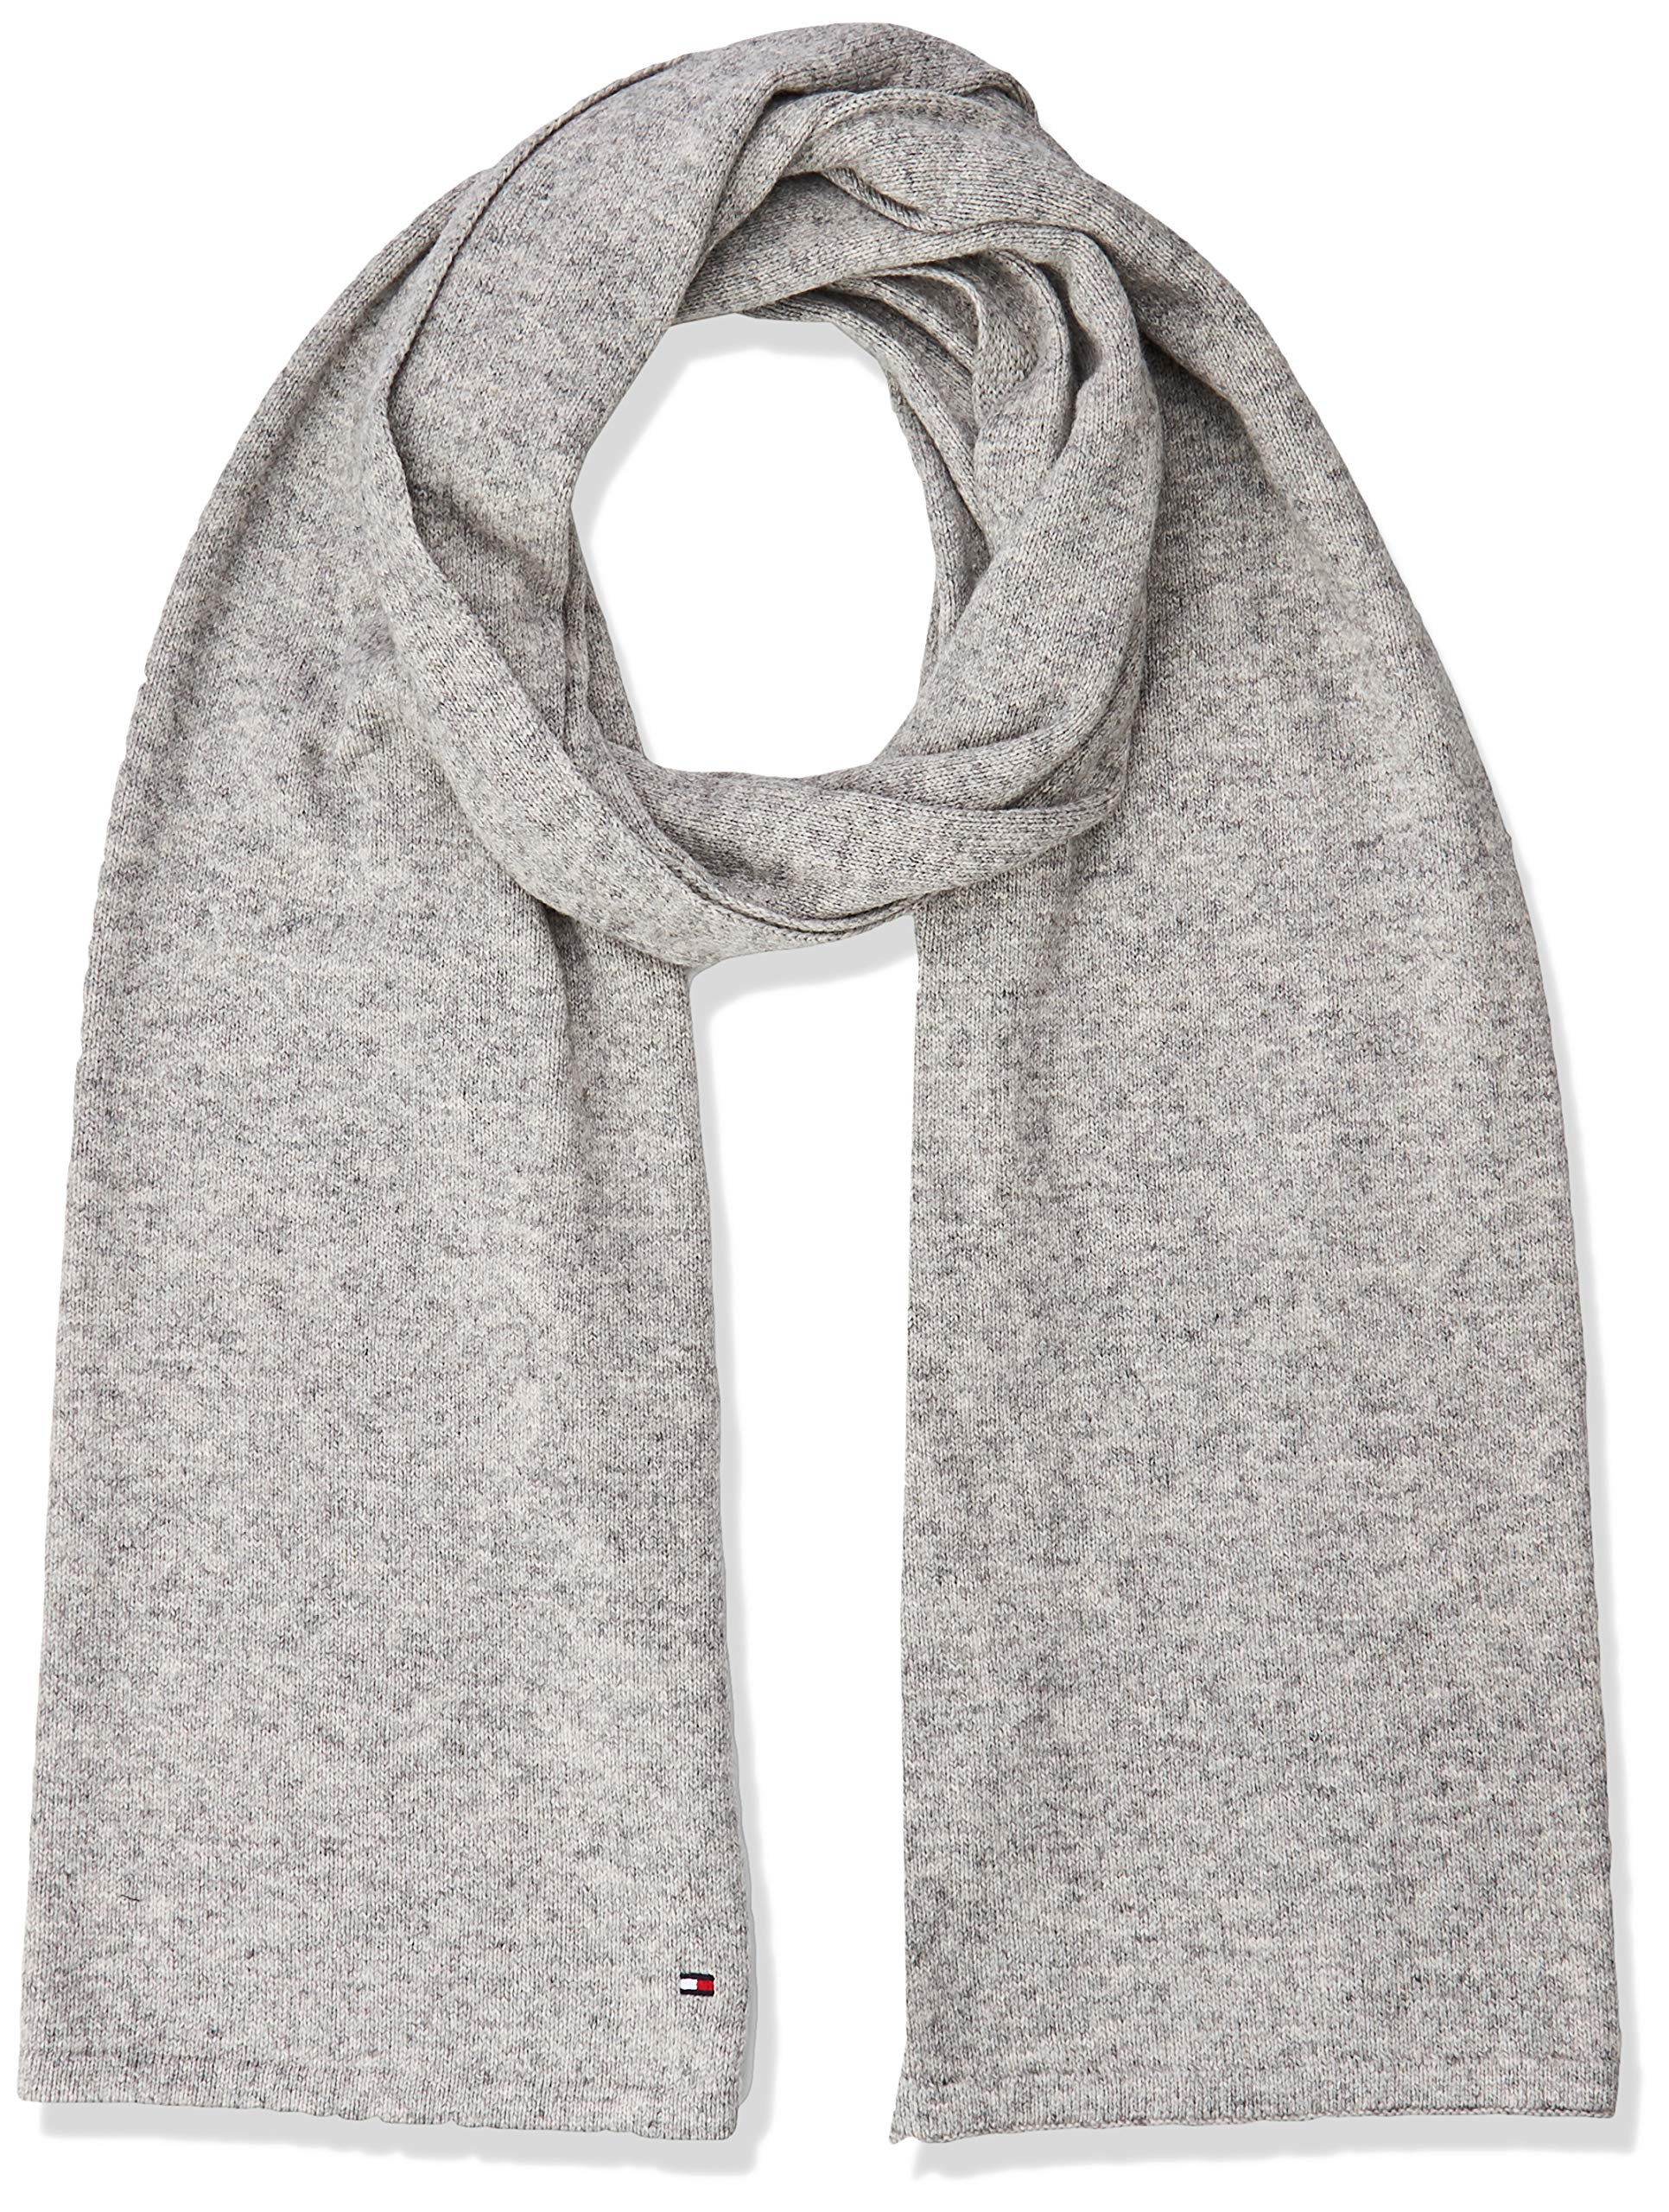 Tommy hilfiger FLAG KNIT SCARF, GREY